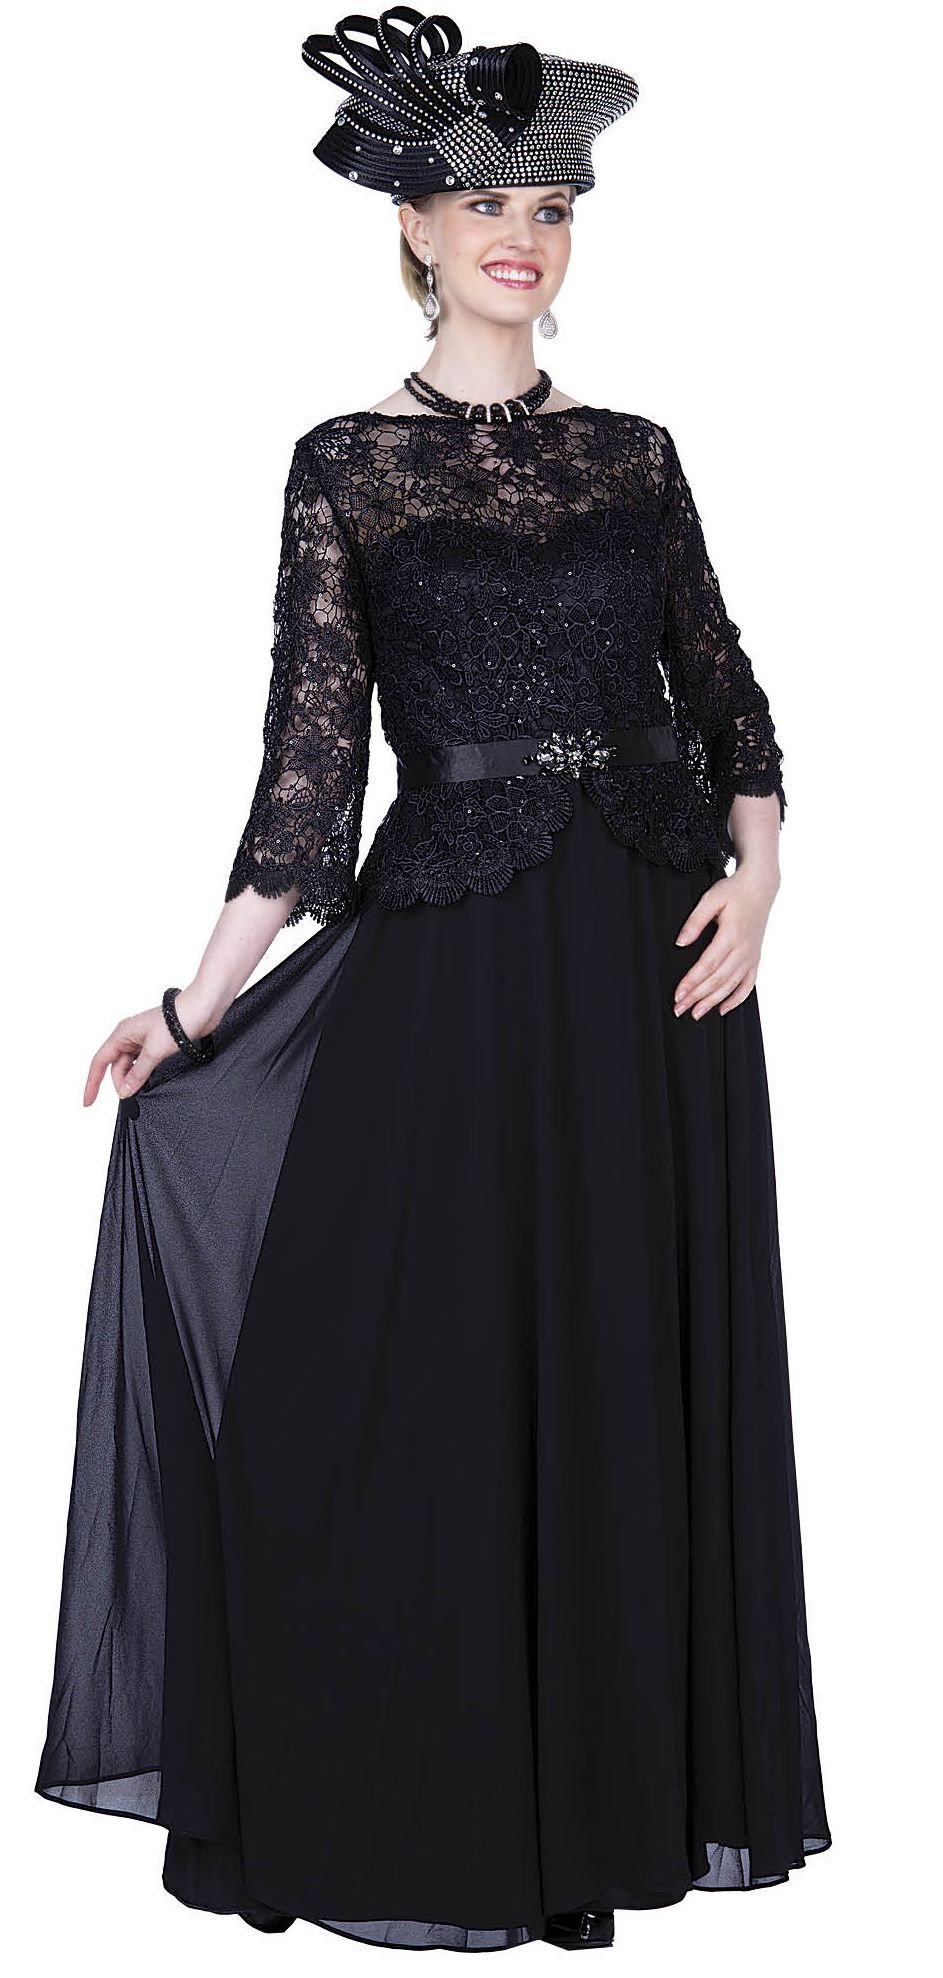 Aussie Austine Dress 5361-Black - Church Suits For Less